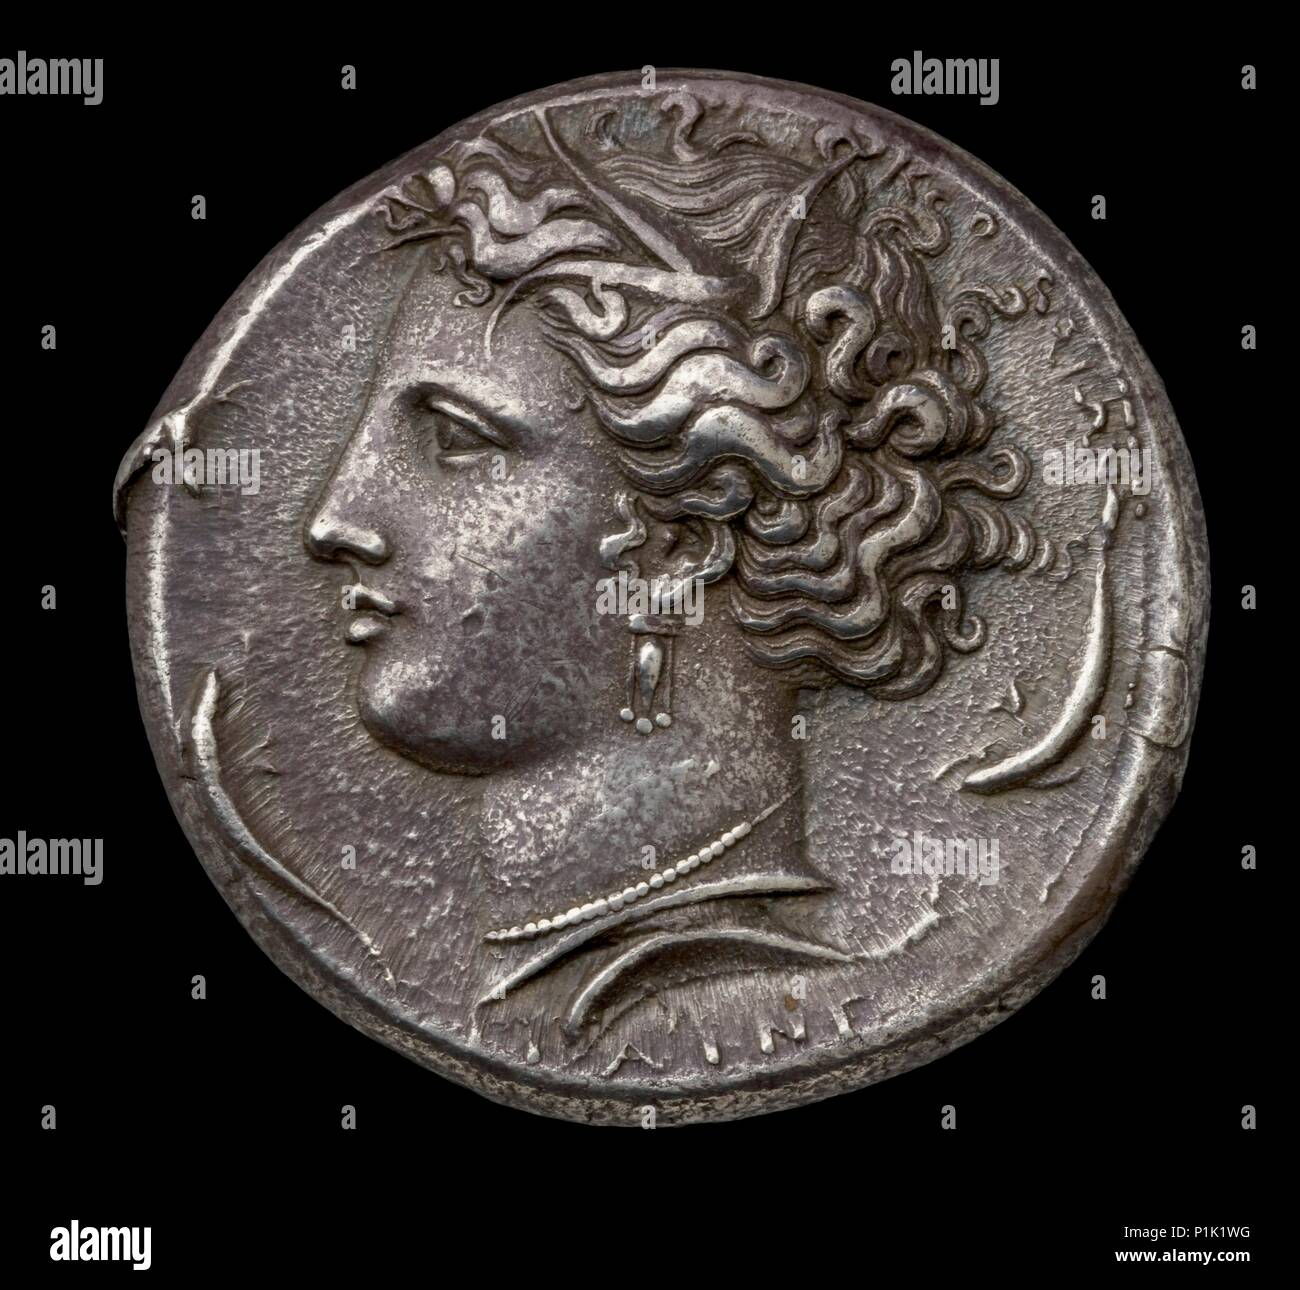 Ancient Greek silver coin, 404 BC / 390 BC.  Dimension: diameter: 40 mmweight: 43.21 gdie-axis: 6 o'clock - Stock Image